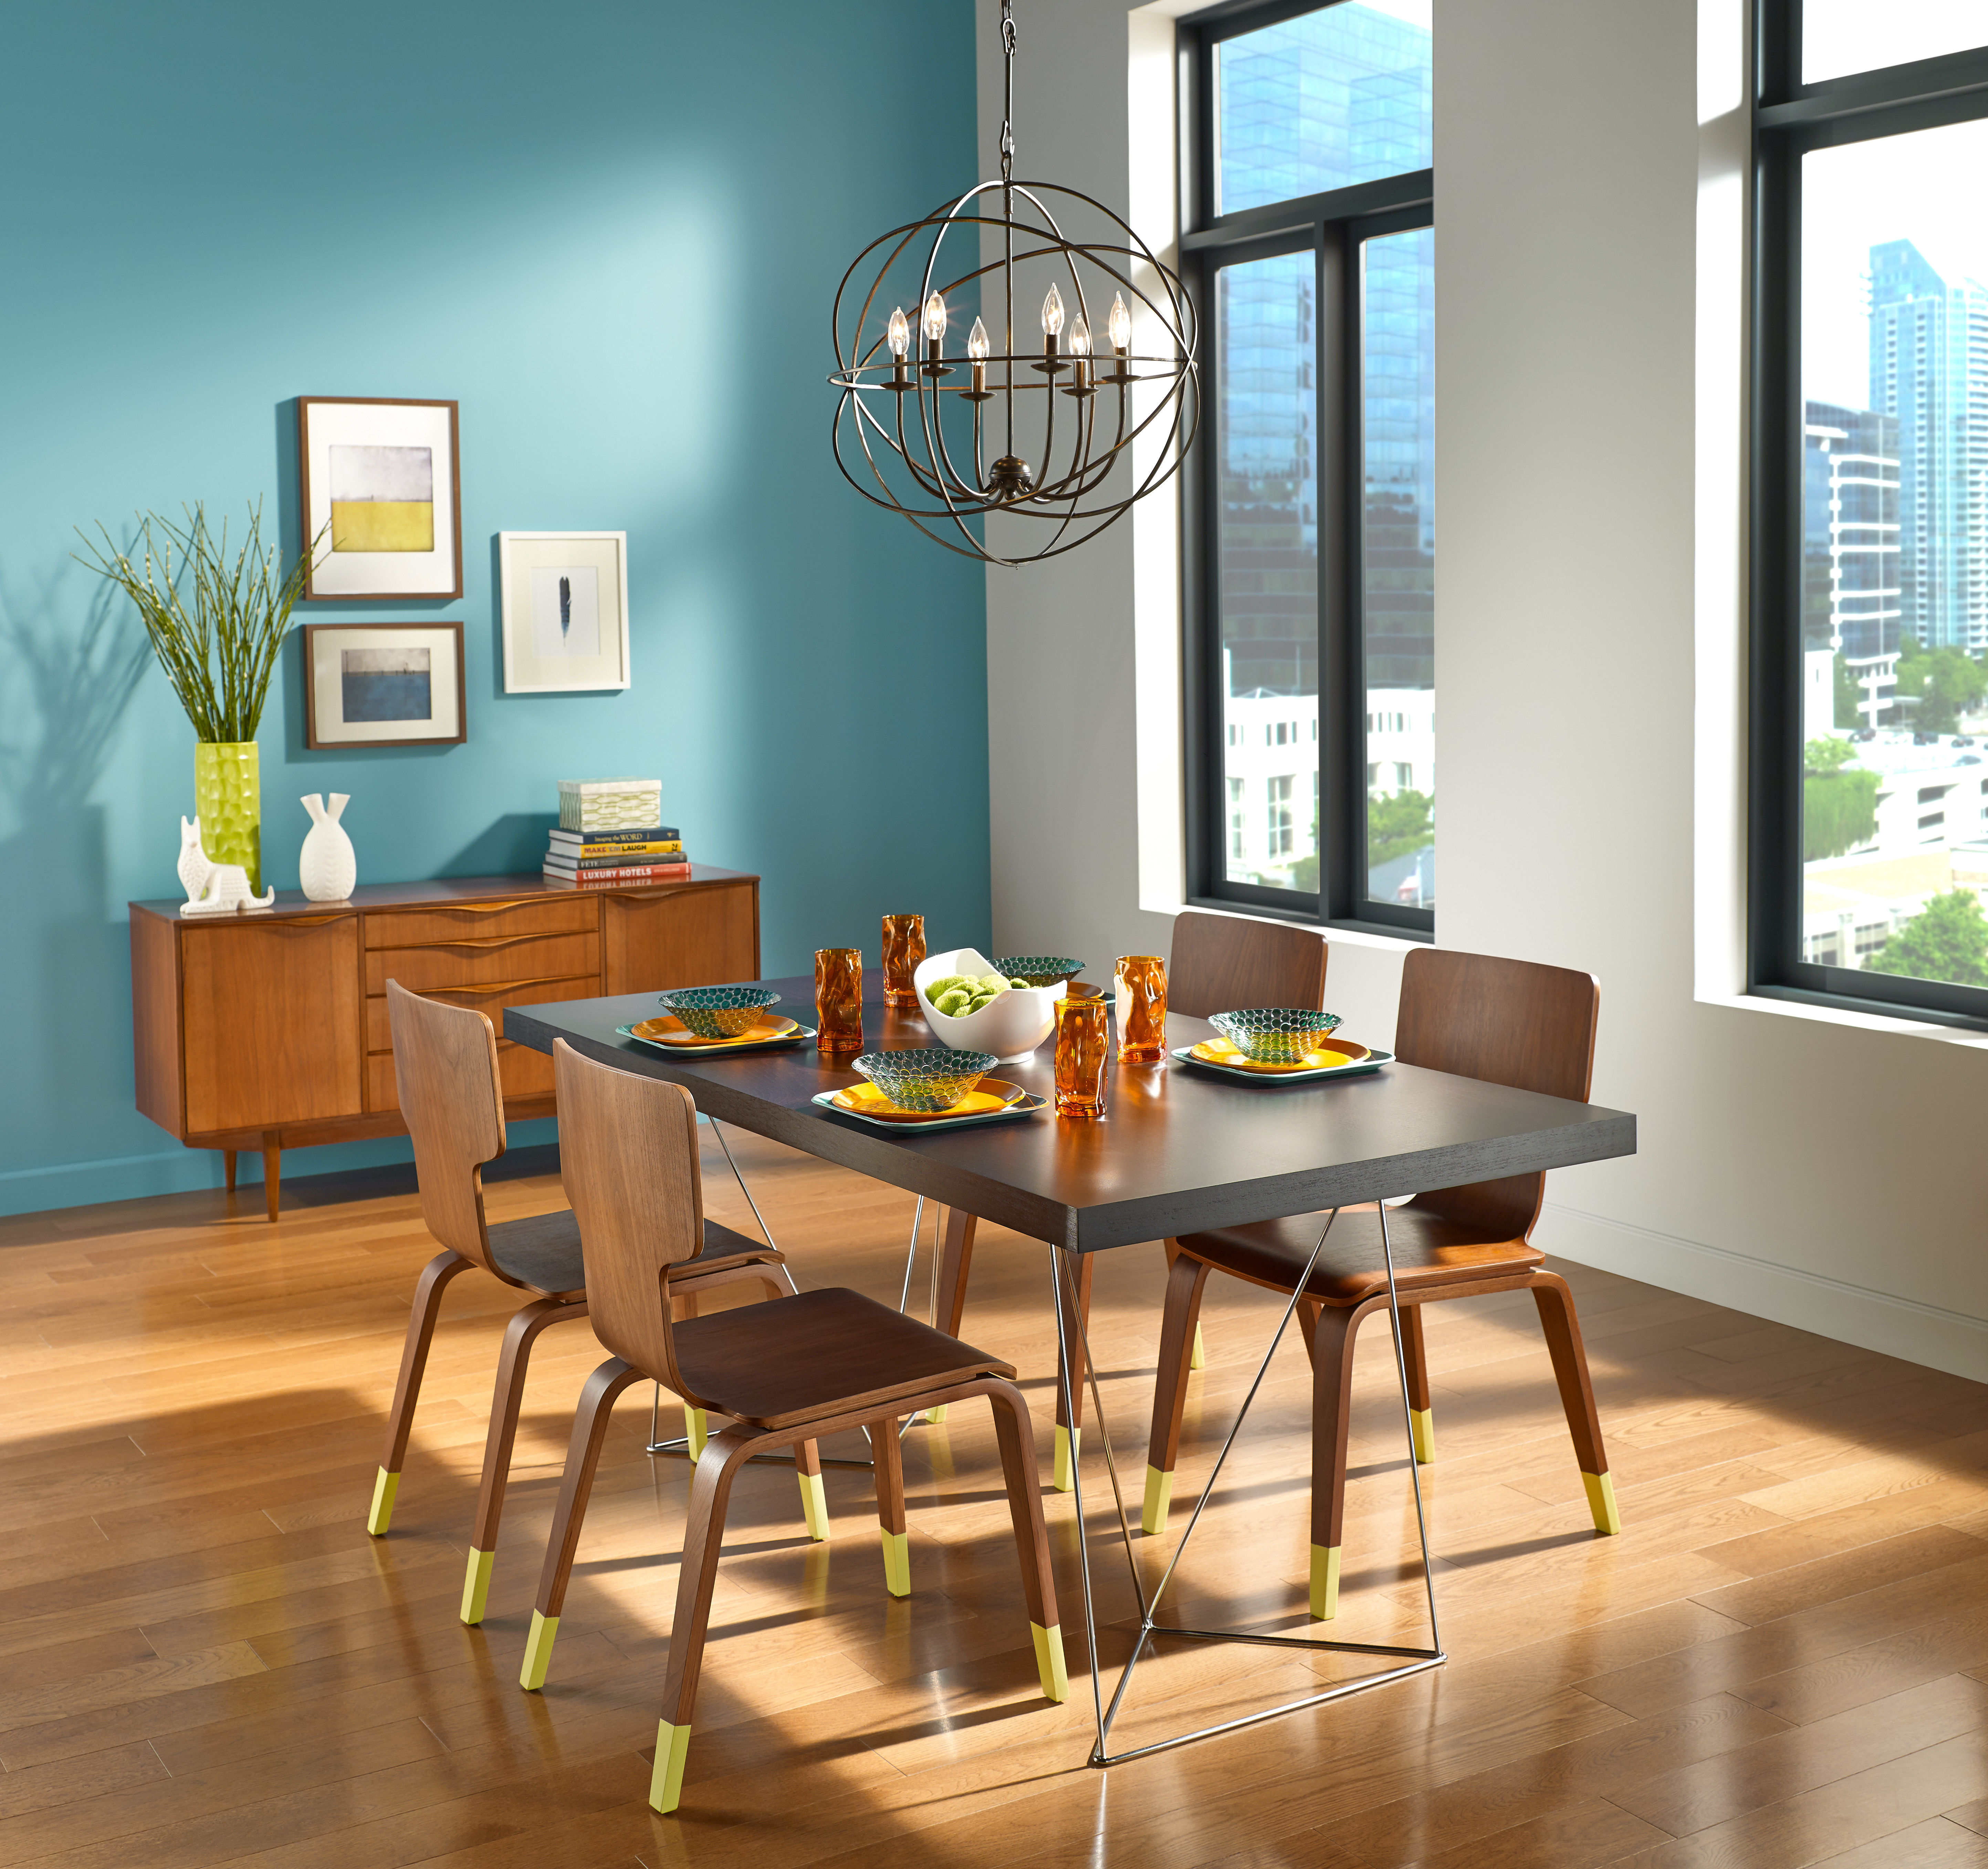 Behr Dining Room Colors: Behr Paints Introduces 2015 Color Trends Featuring Four